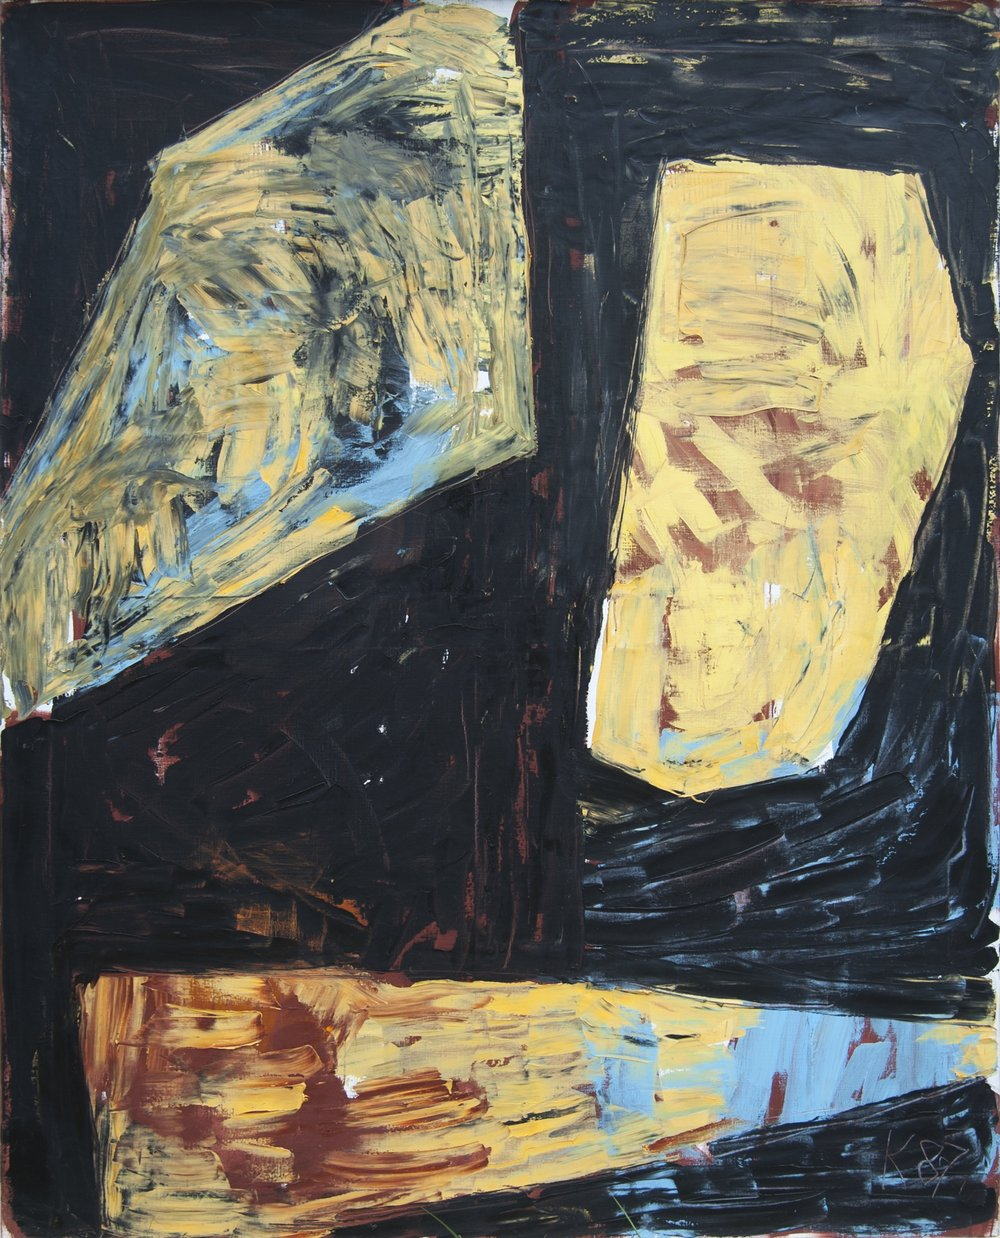 Ägyptische Reihe V , 1987, Oil on canvas, 78.74h x 62.99w in (200h x 160w cm)